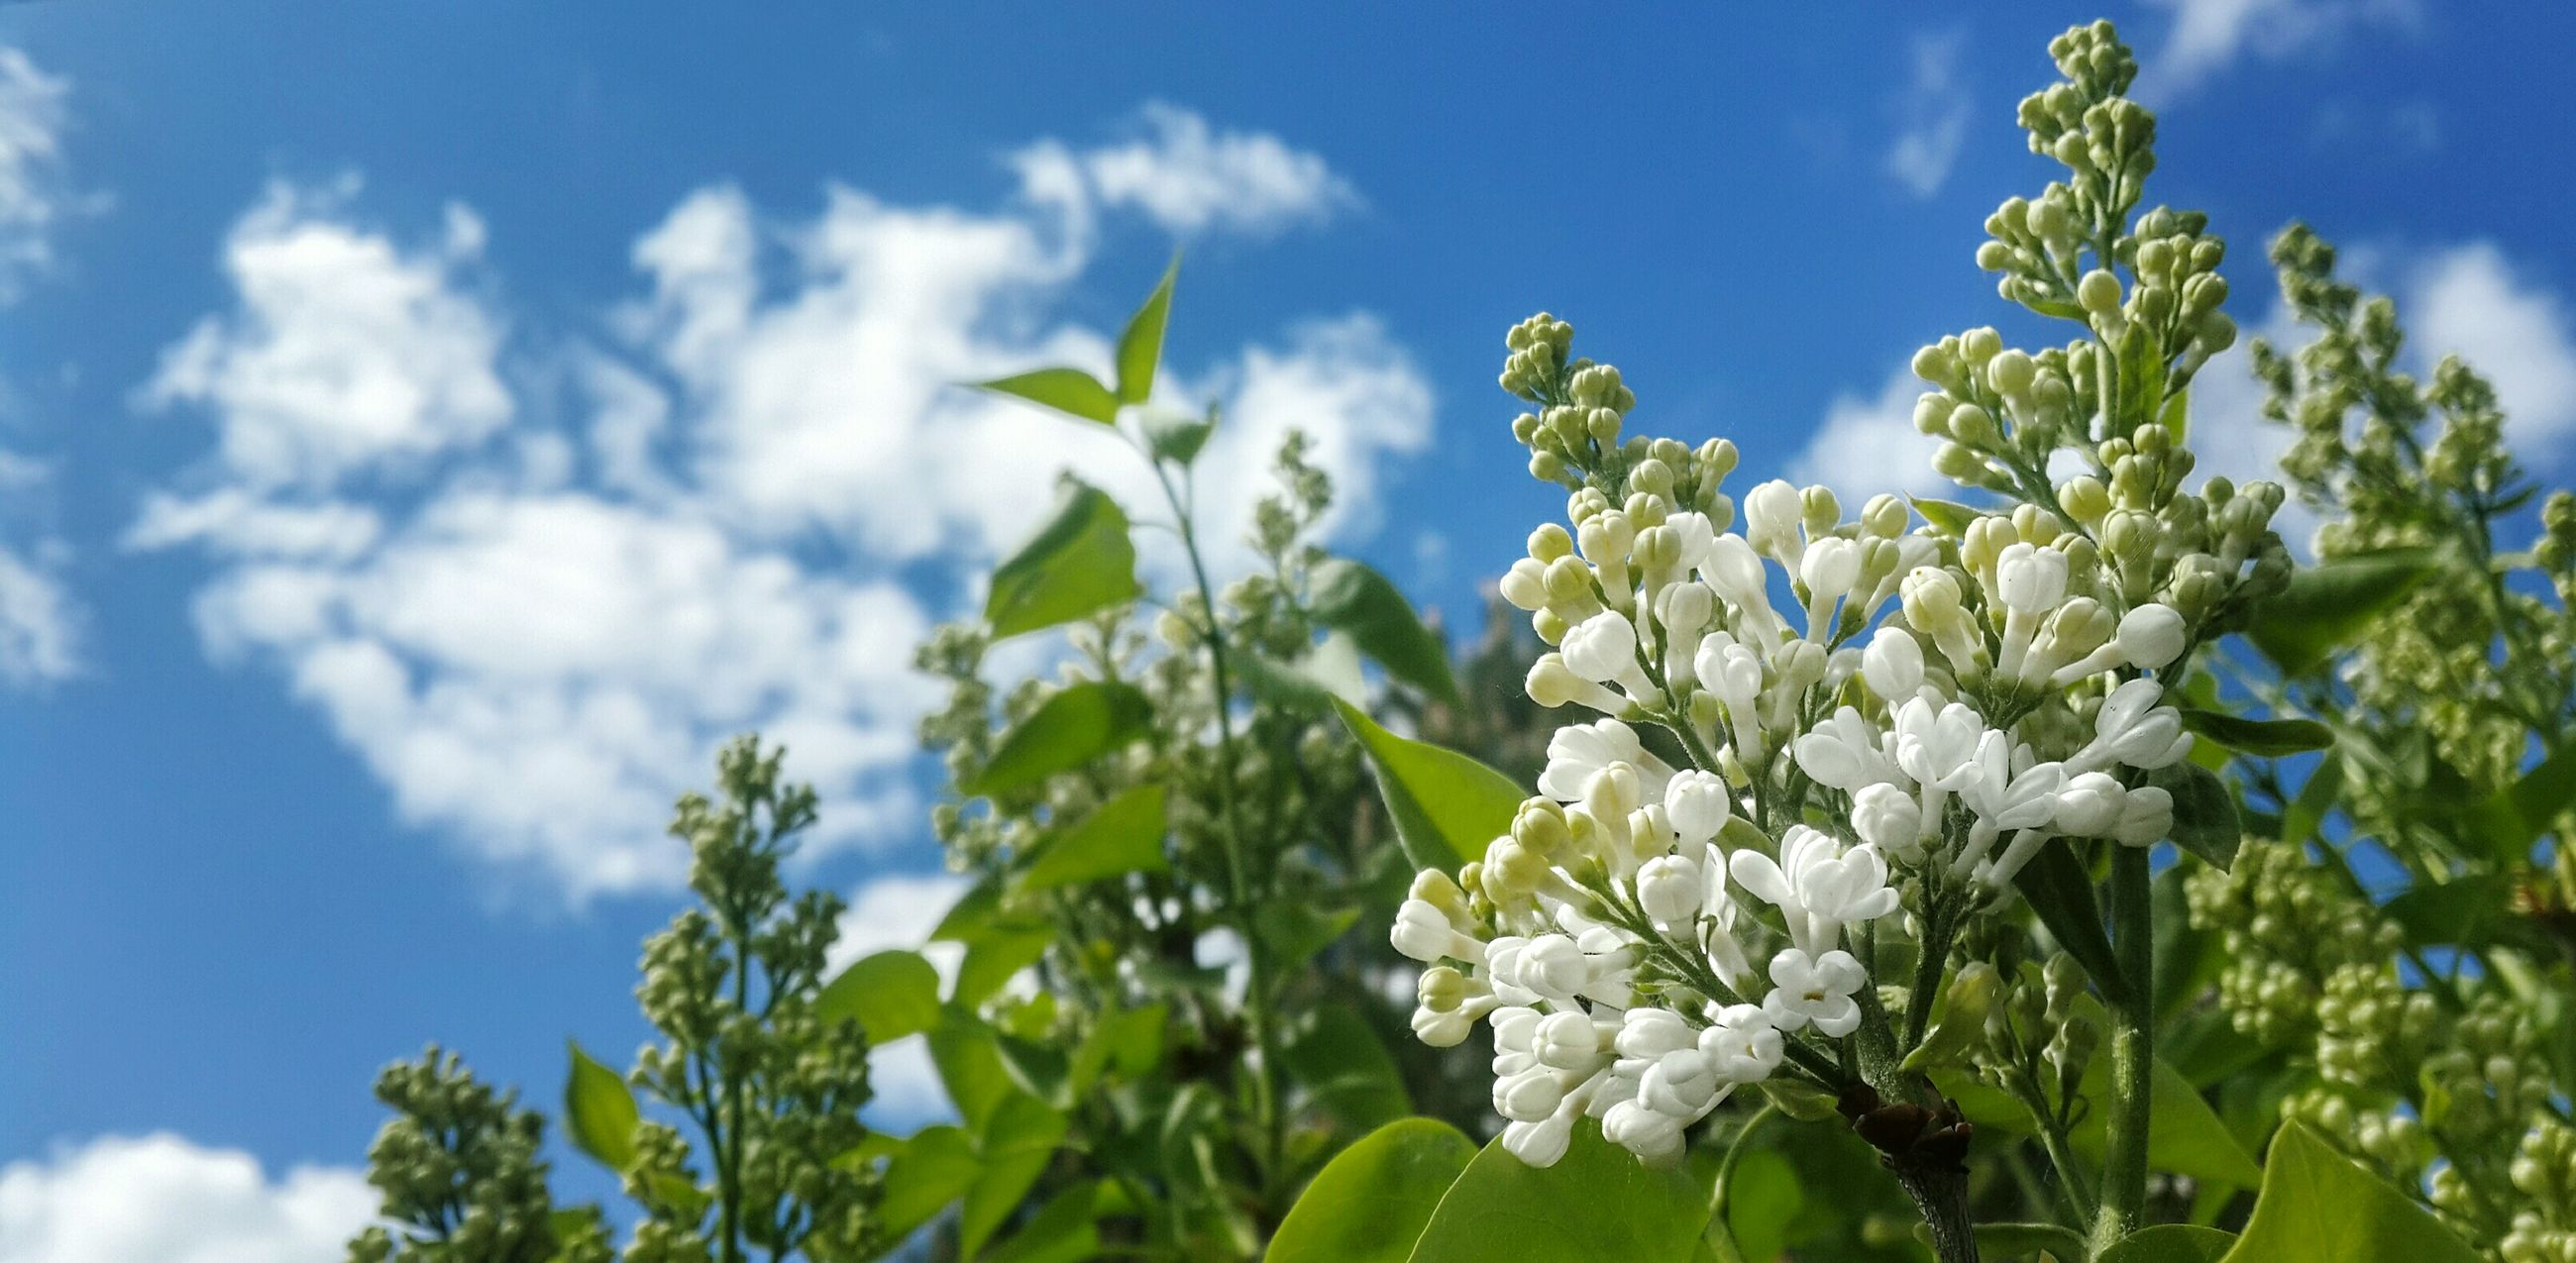 flower, growth, sky, freshness, fragility, low angle view, beauty in nature, nature, leaf, white color, plant, blue, cloud - sky, petal, close-up, focus on foreground, blooming, cloud, green color, day